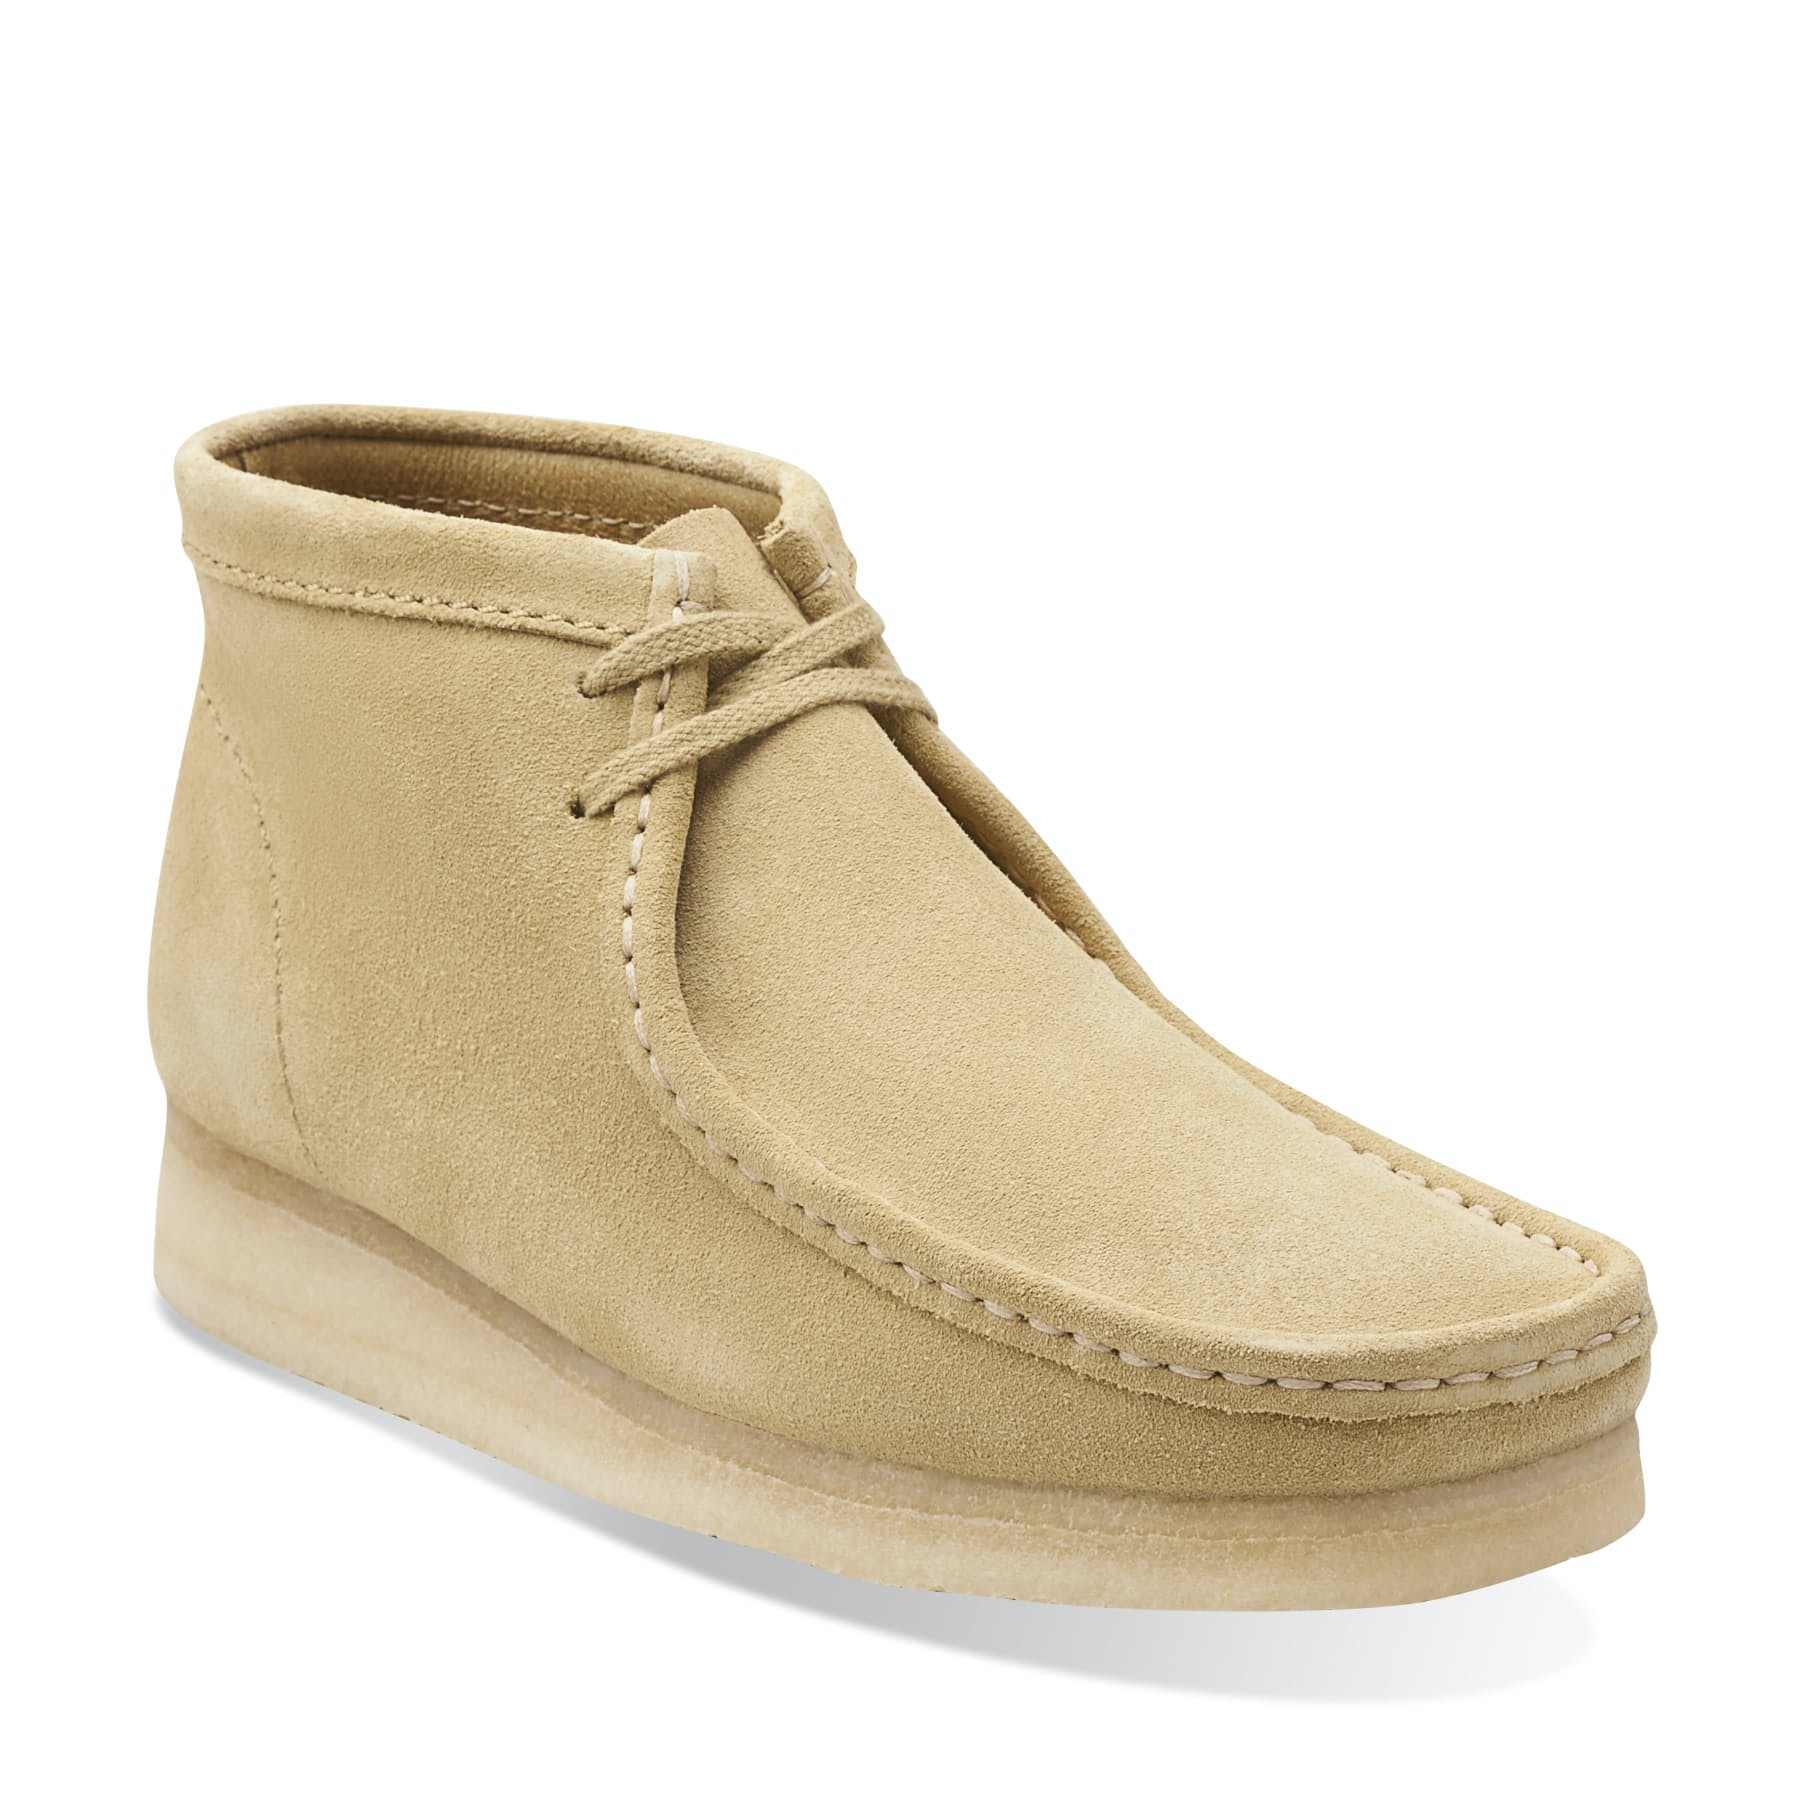 Qfw1neqs6o clarks wallabee boot 0 original